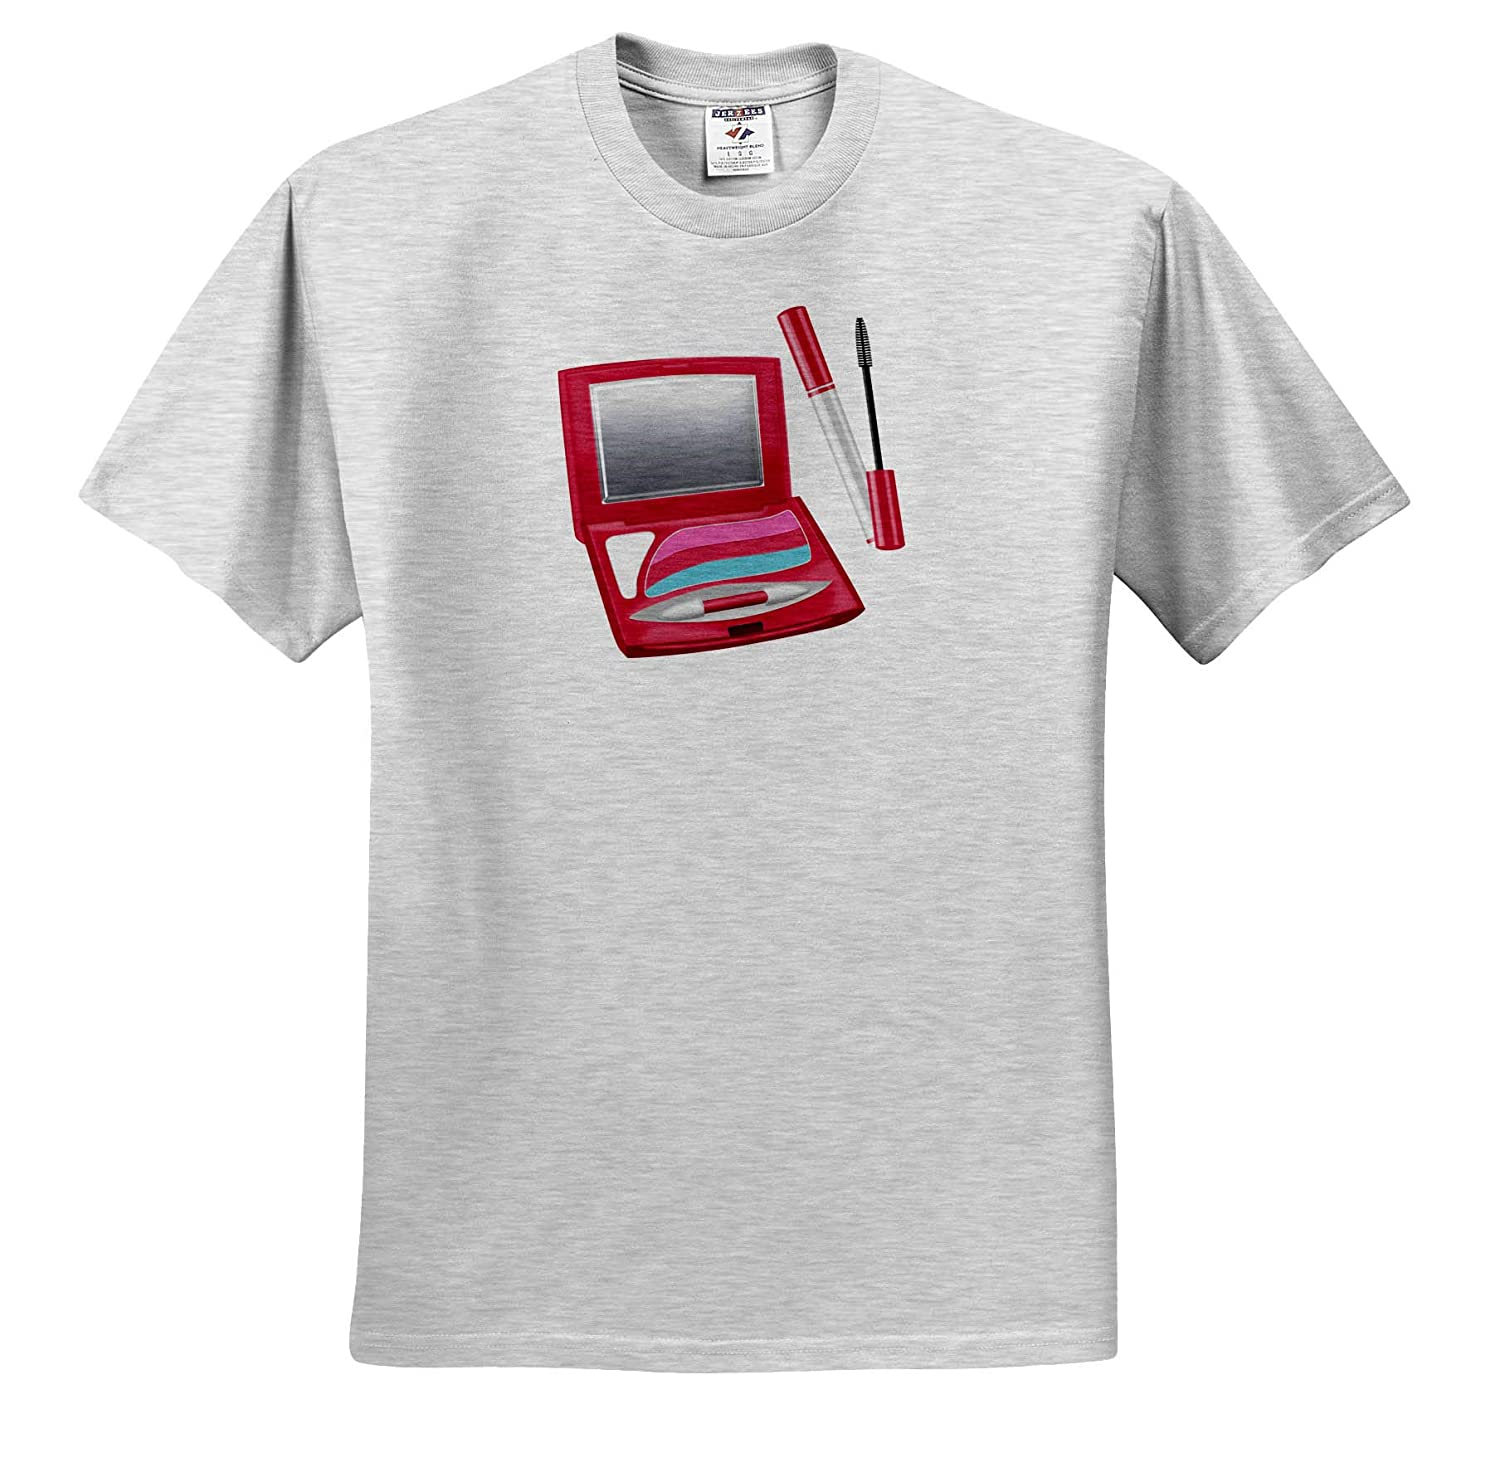 3dRose Anne Marie Baugh Eye Shadow Compact and Mascara Illustration Illustrations ts/_317950 Adult T-Shirt XL